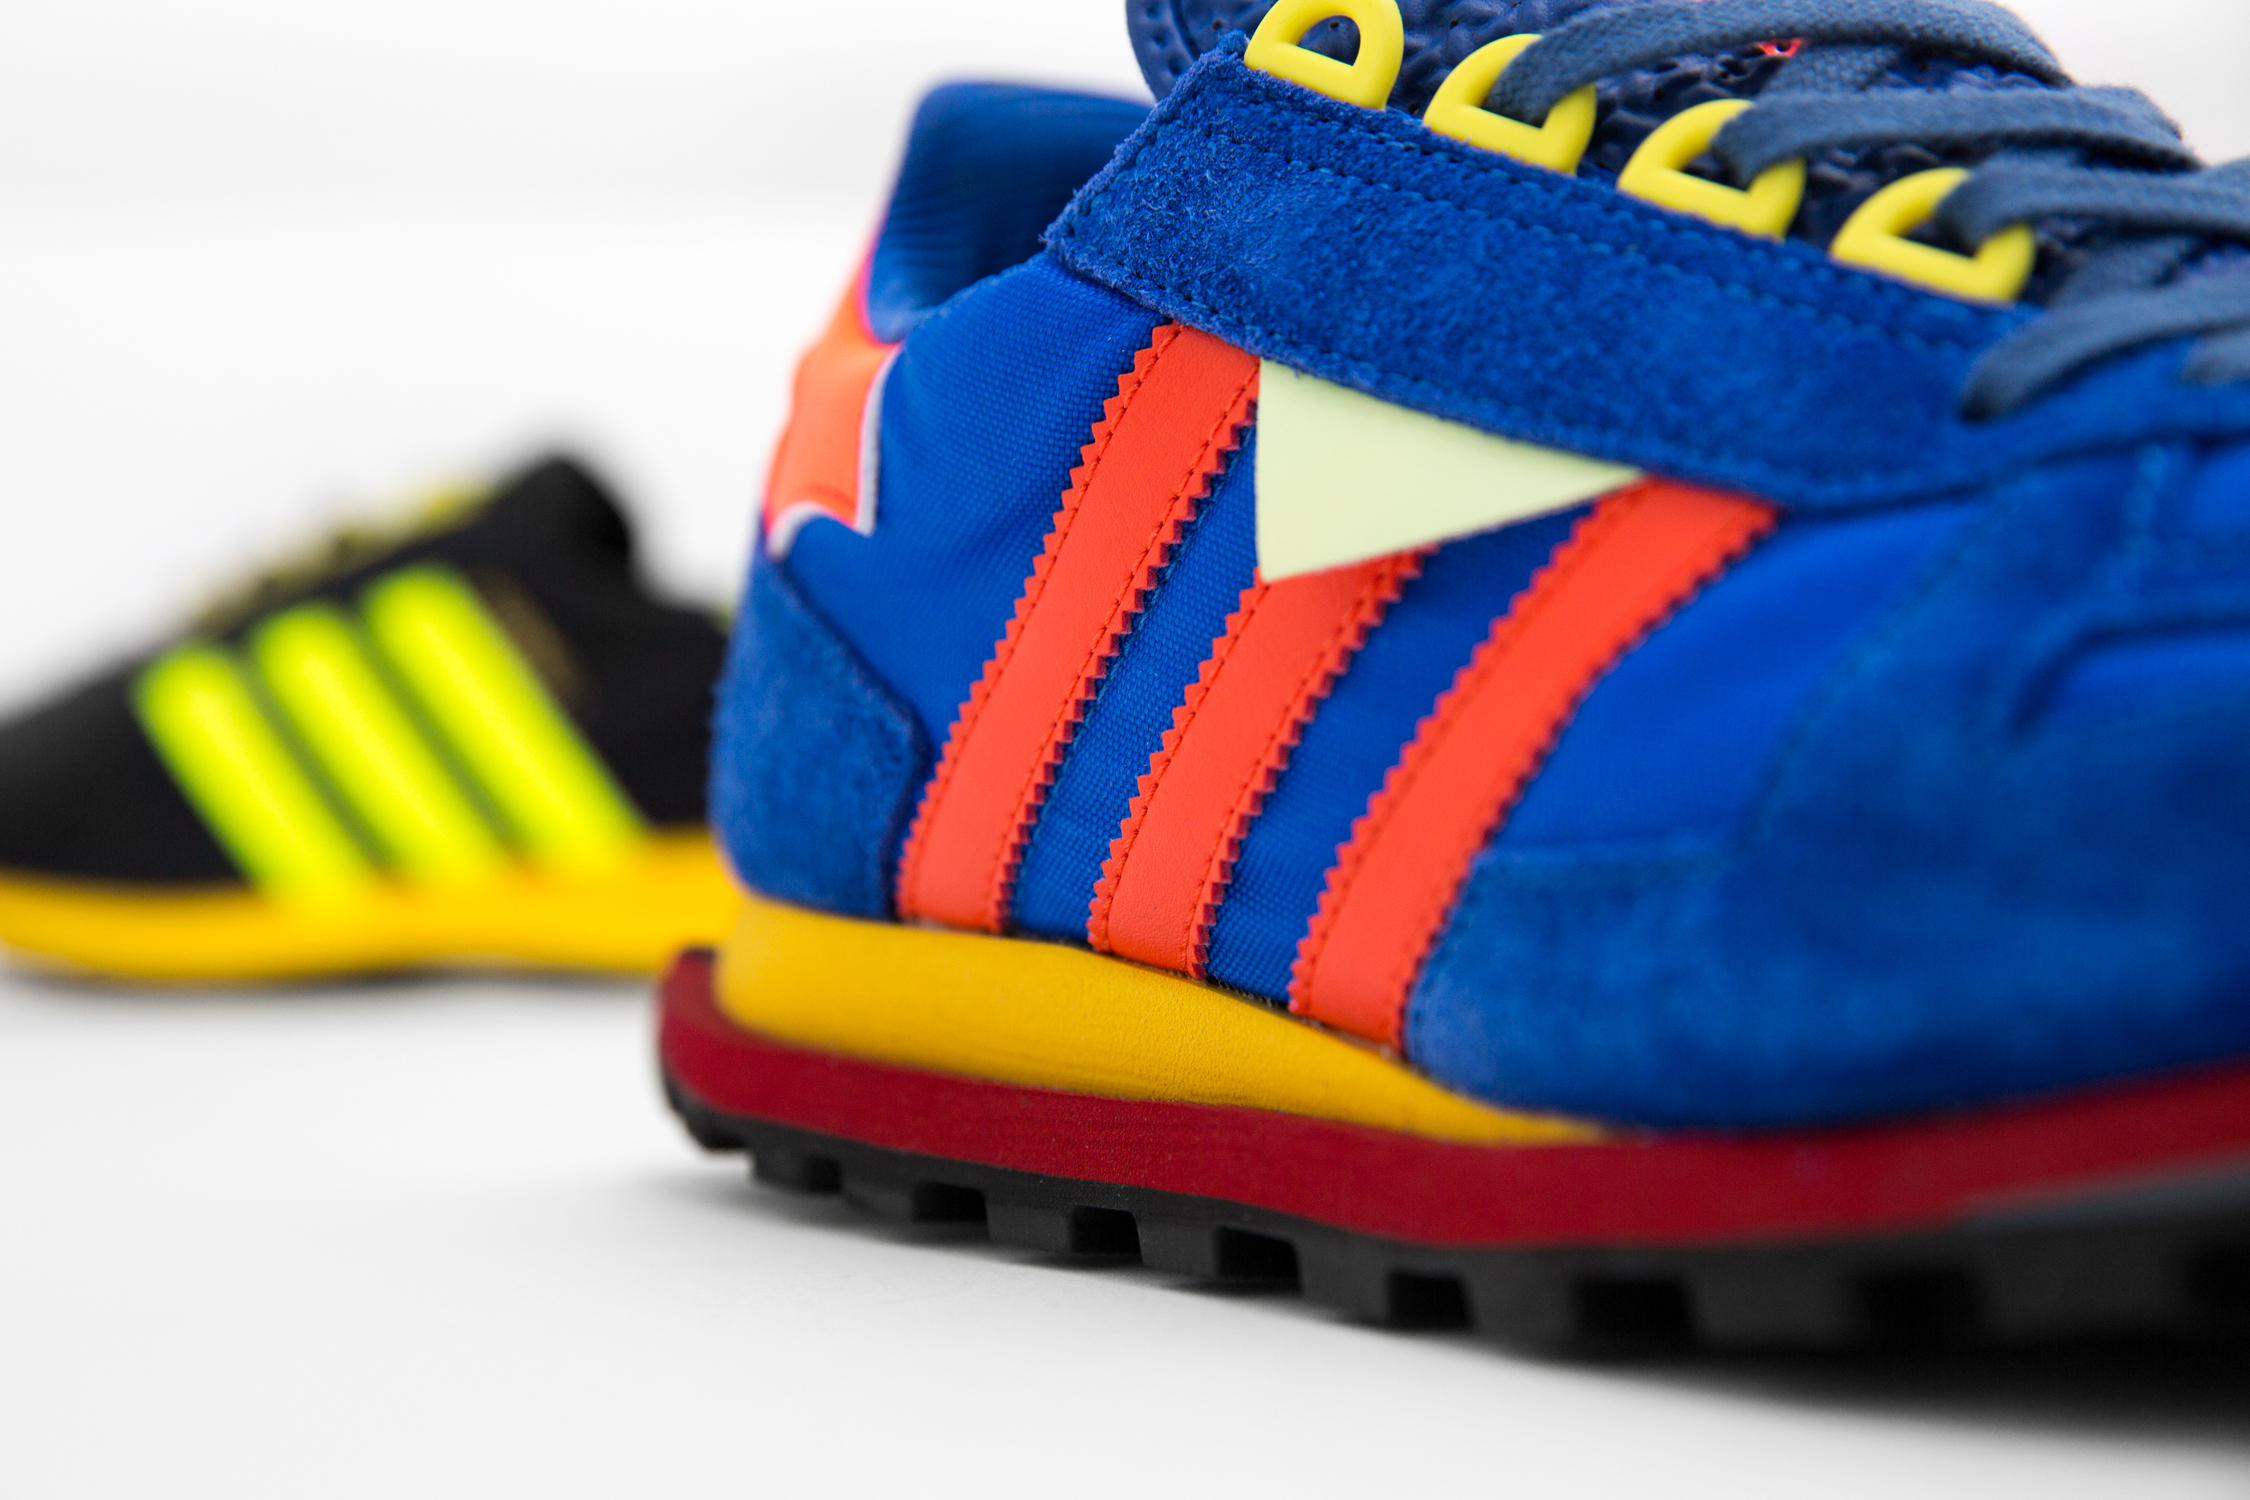 adidas Originals Racing 1 & Racing 1 Prototype